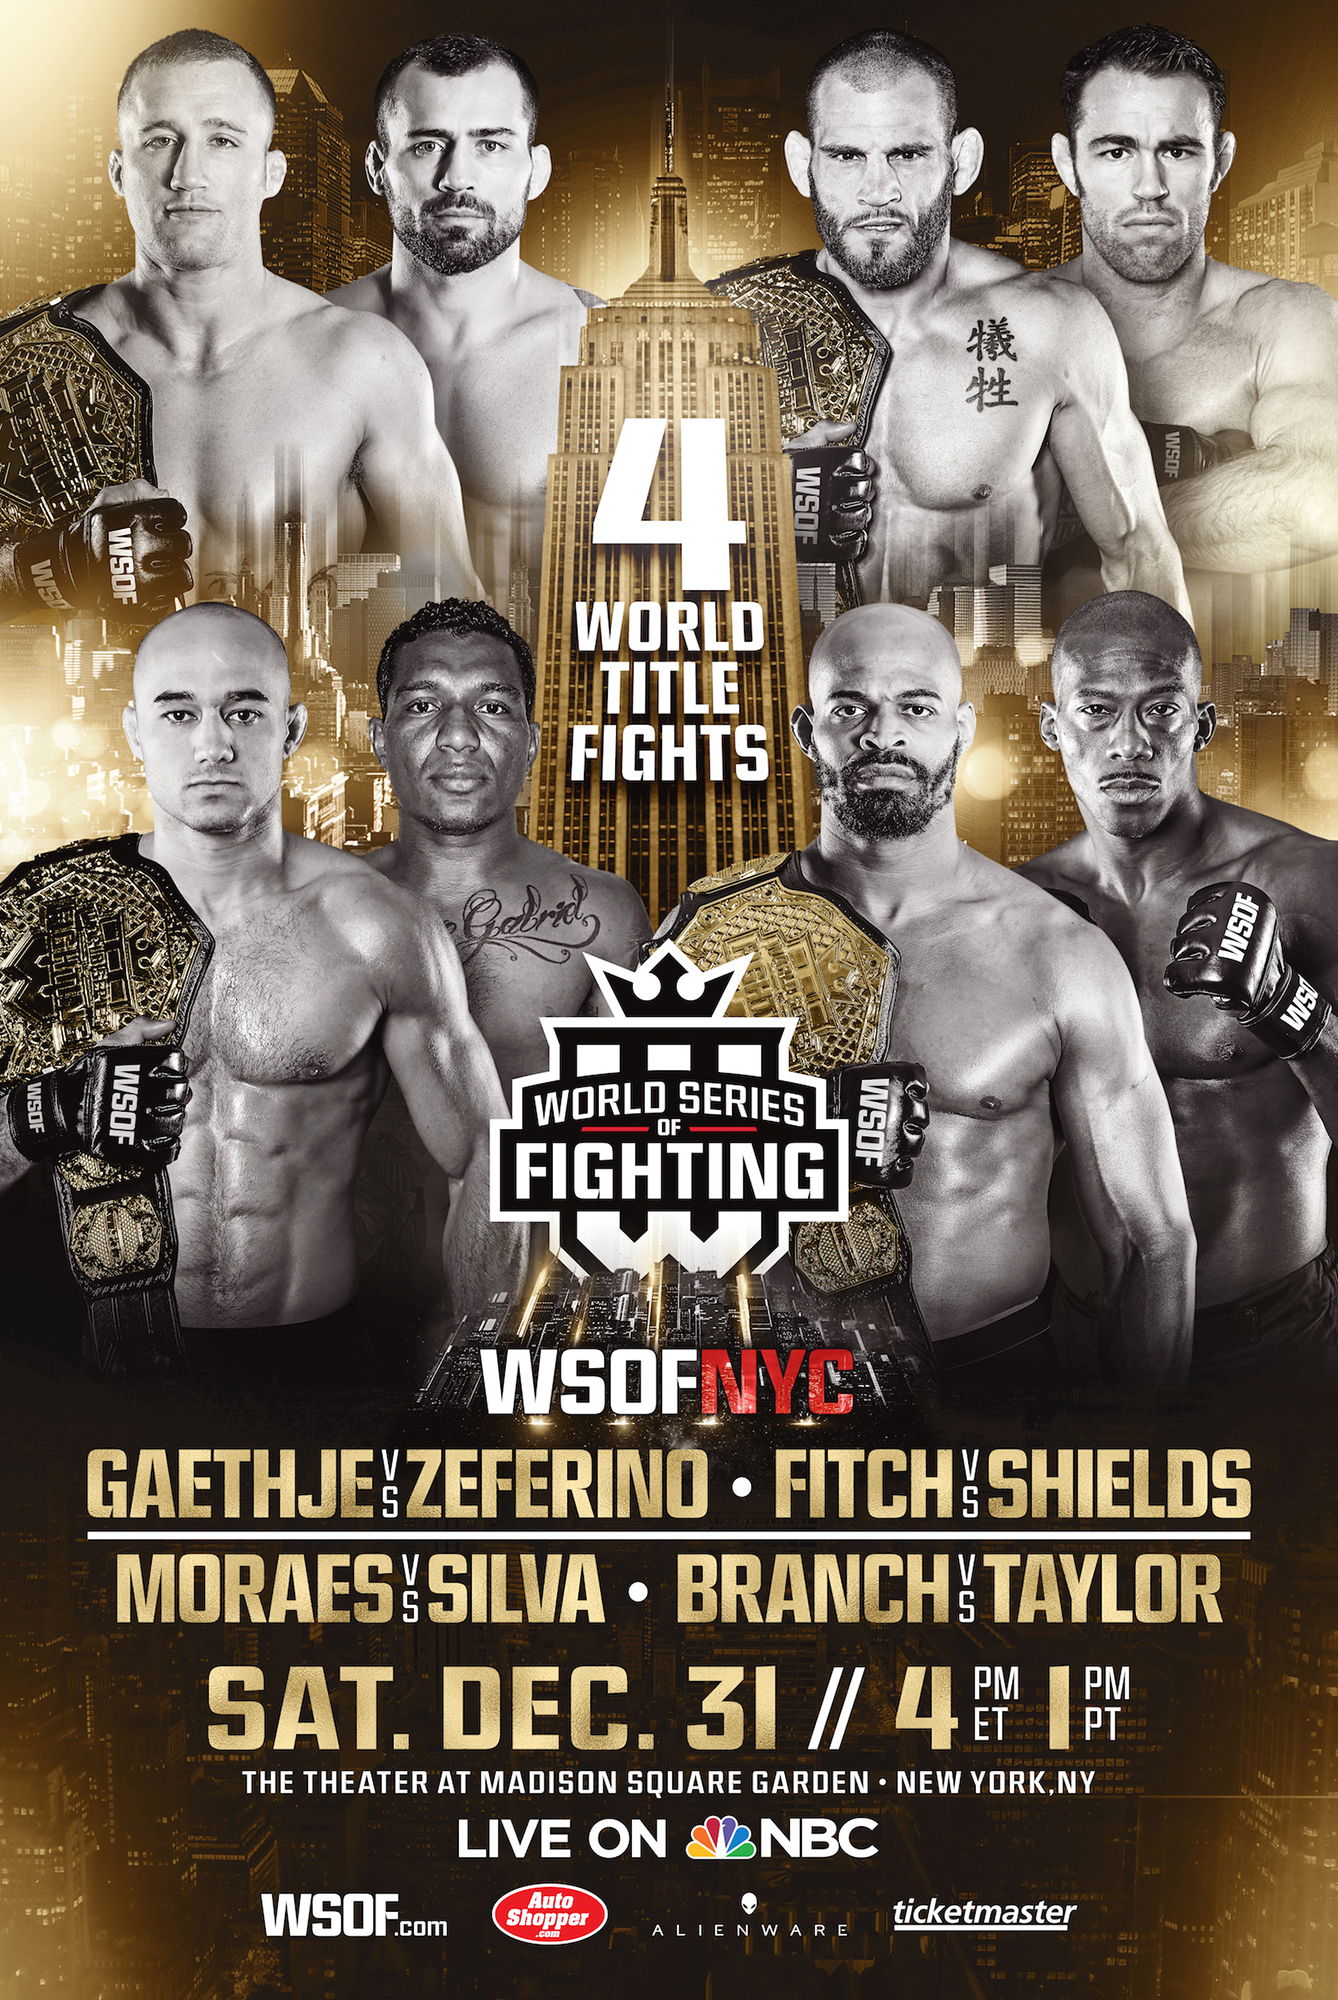 WSOF NYC Live Play by Play